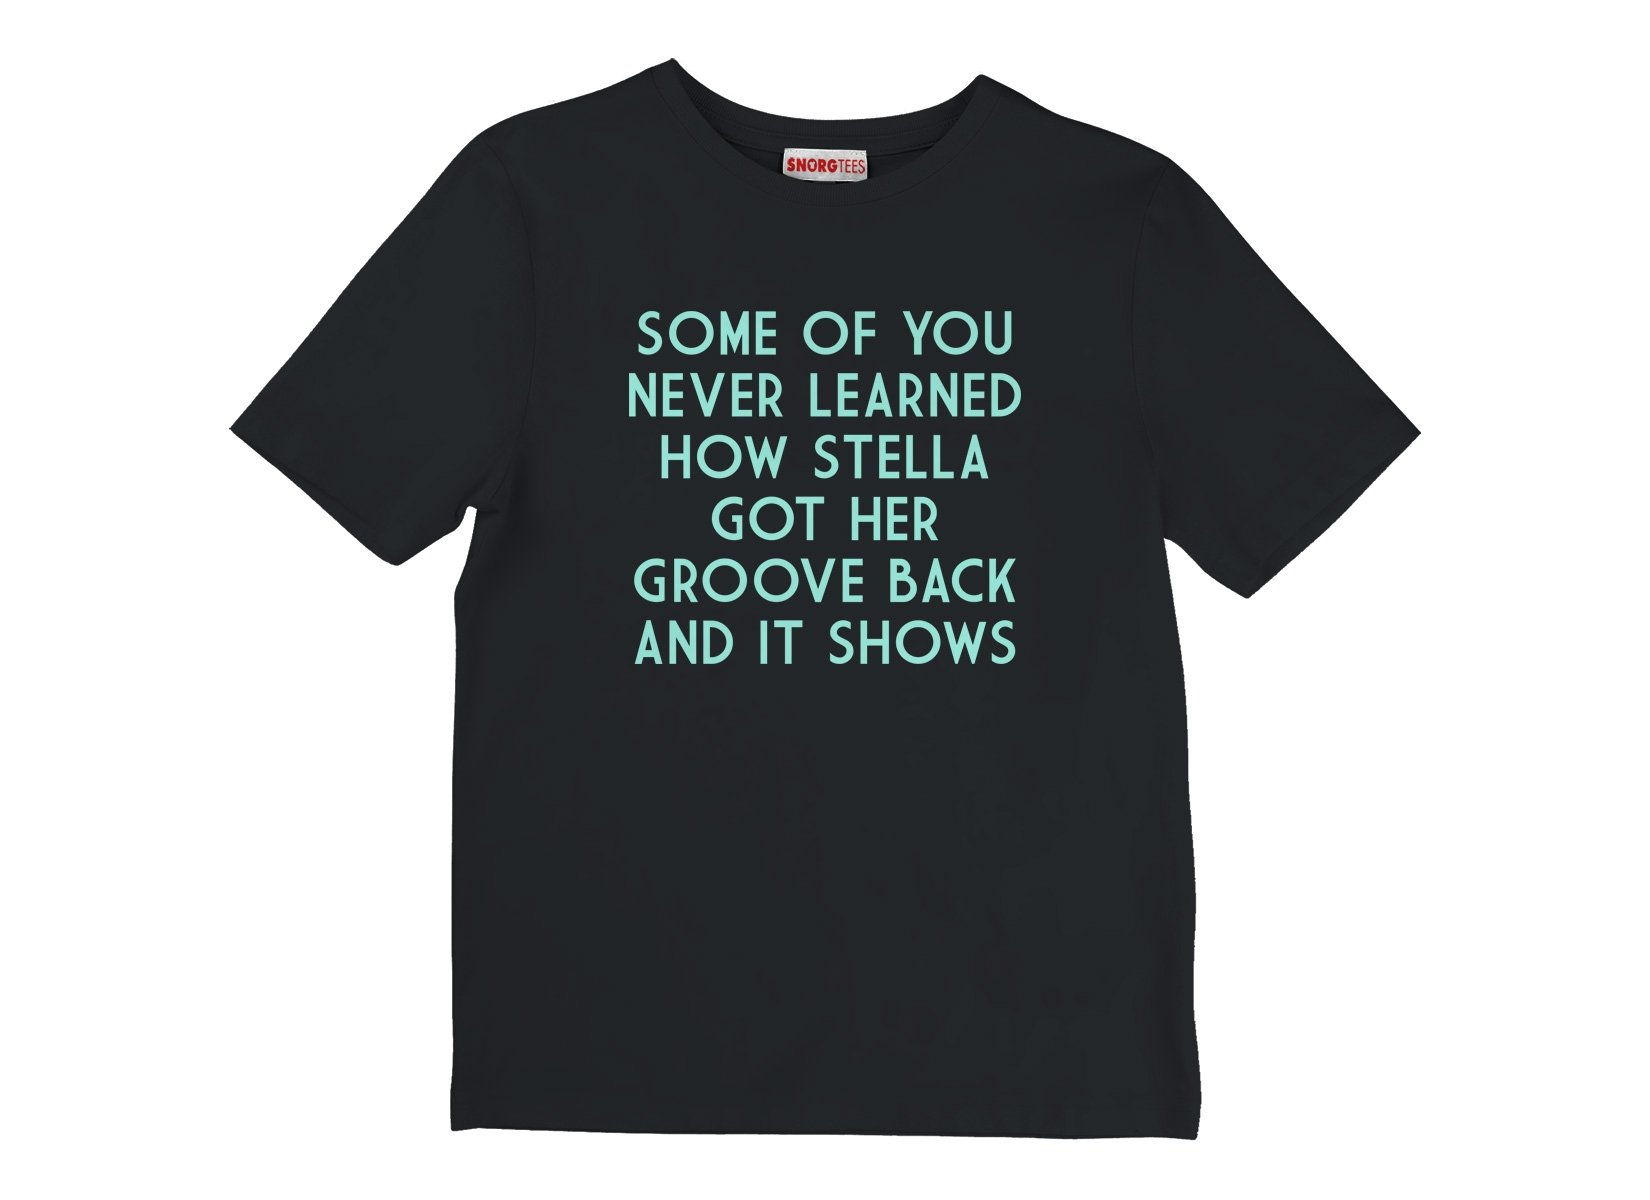 Some Of You Never Learned on Kids T-Shirt